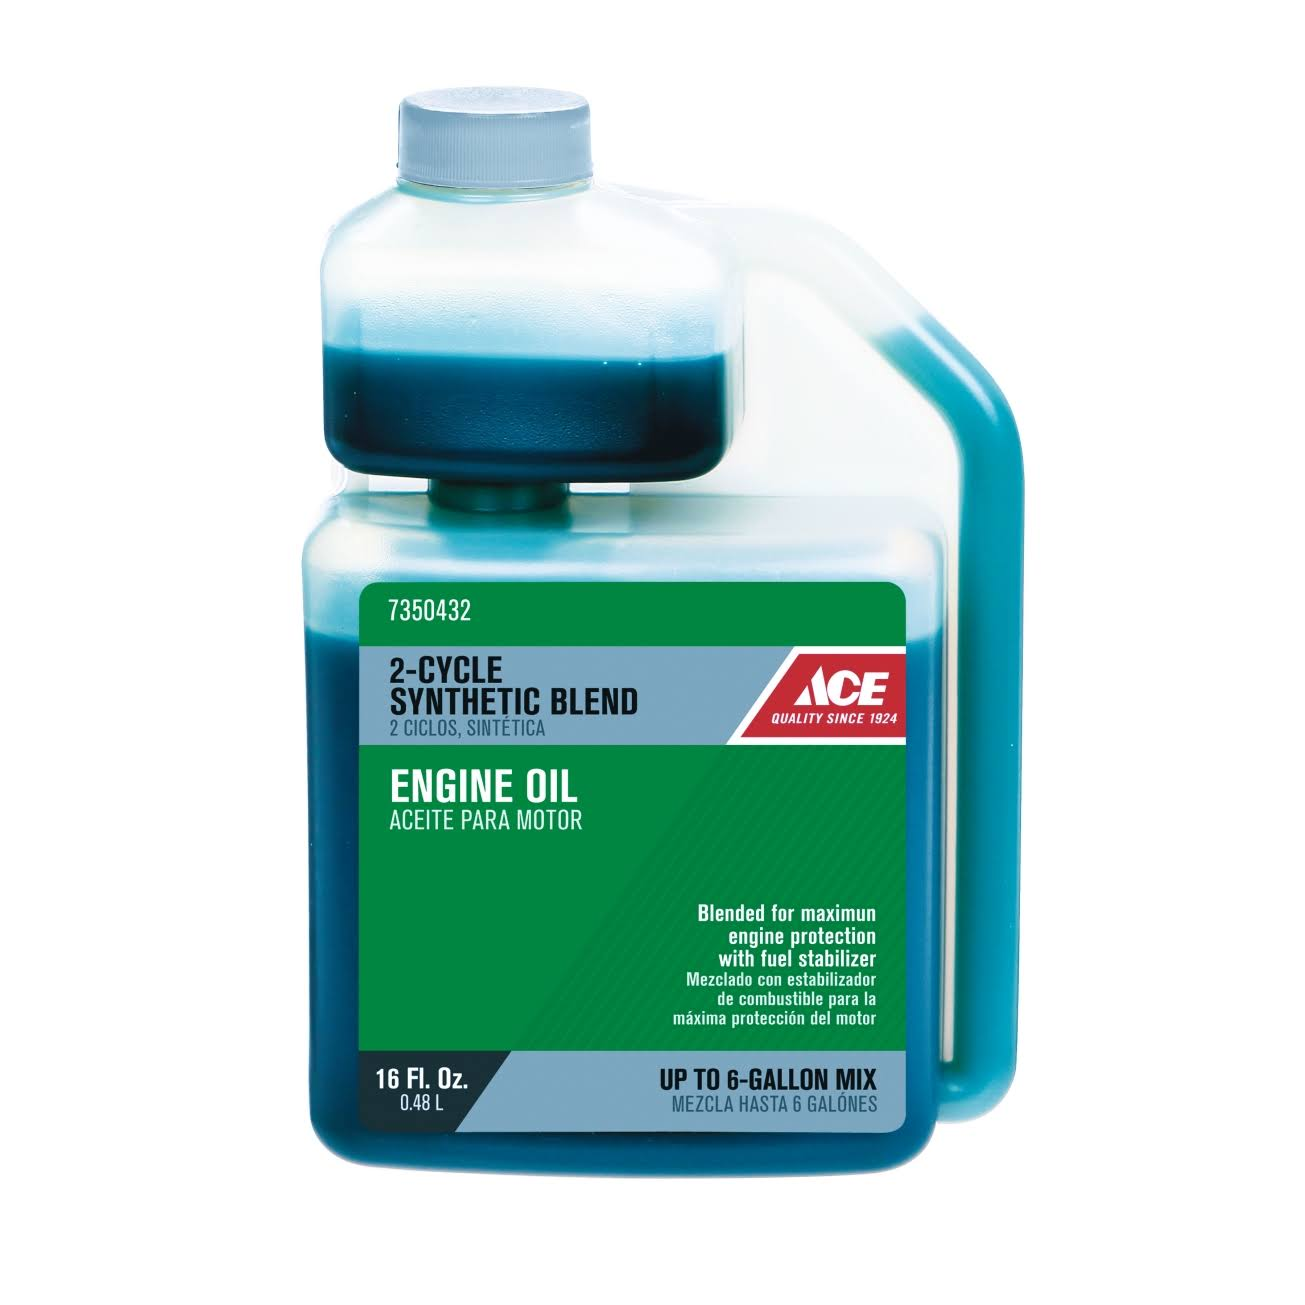 Ace 2-Cycle Synthetic Blend Engine Oil